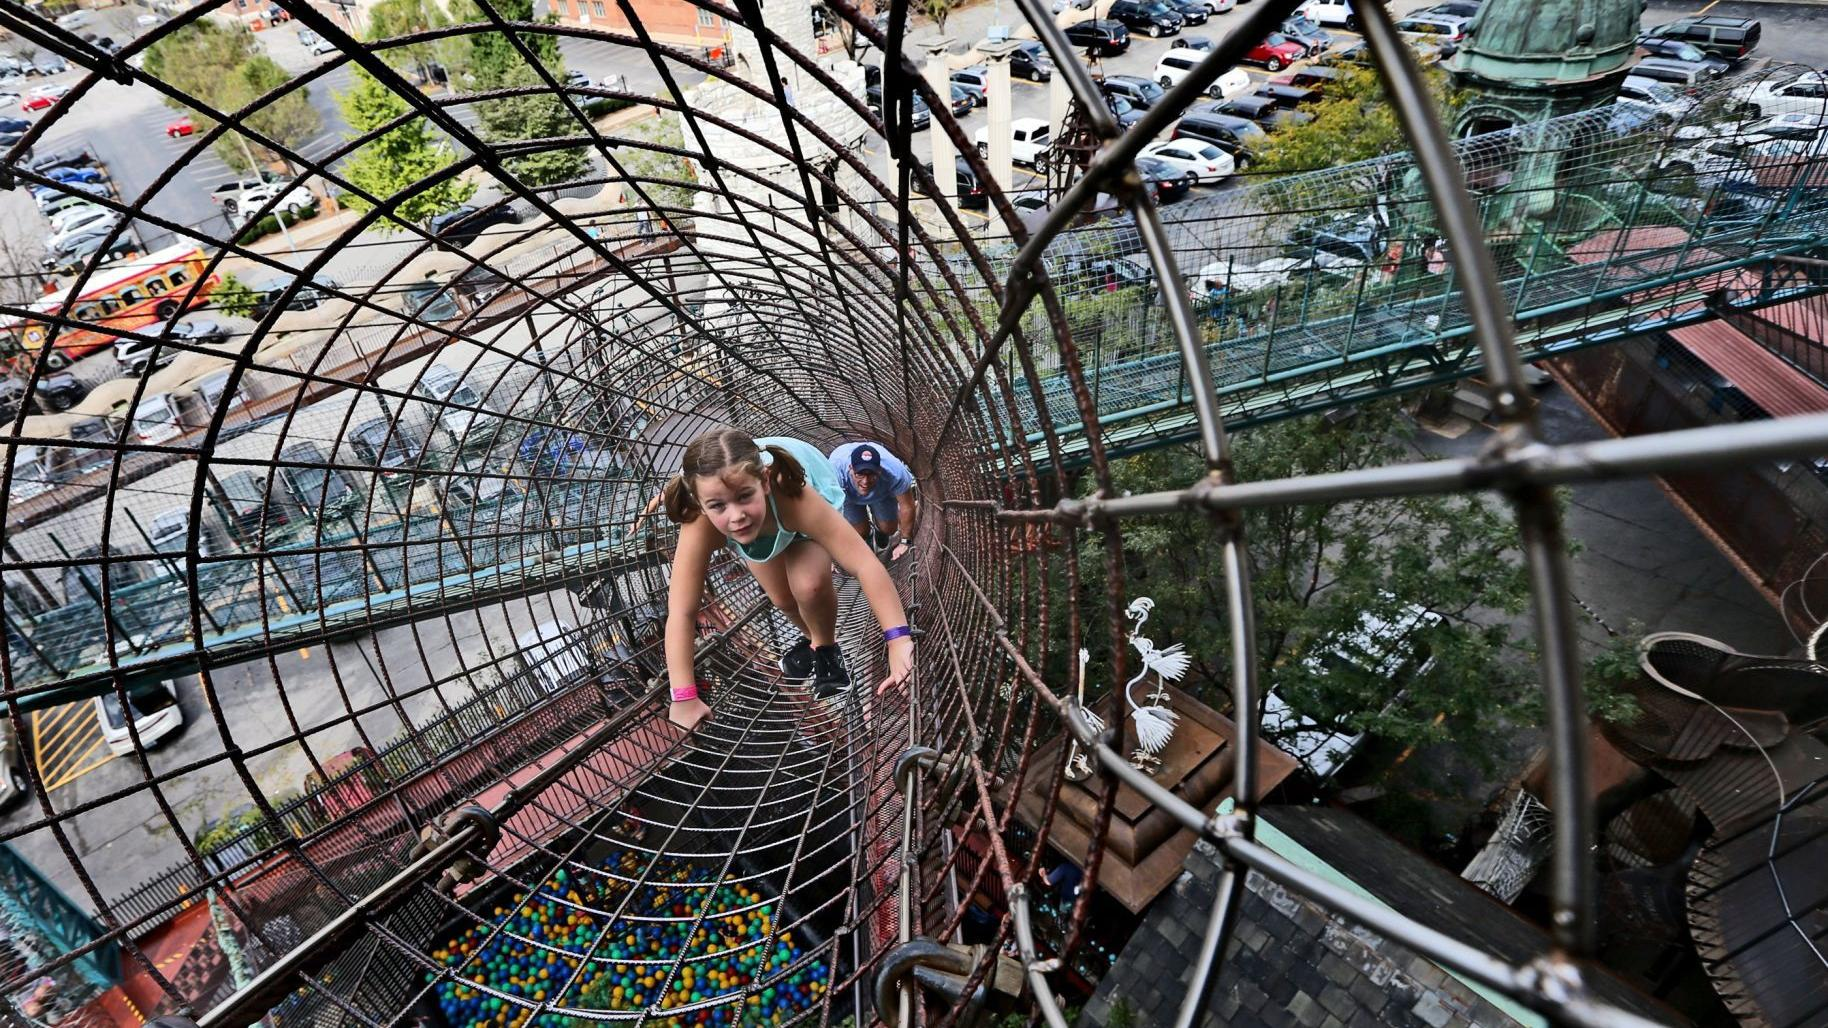 City Museum celebrates 20 years of 'organized crazy'